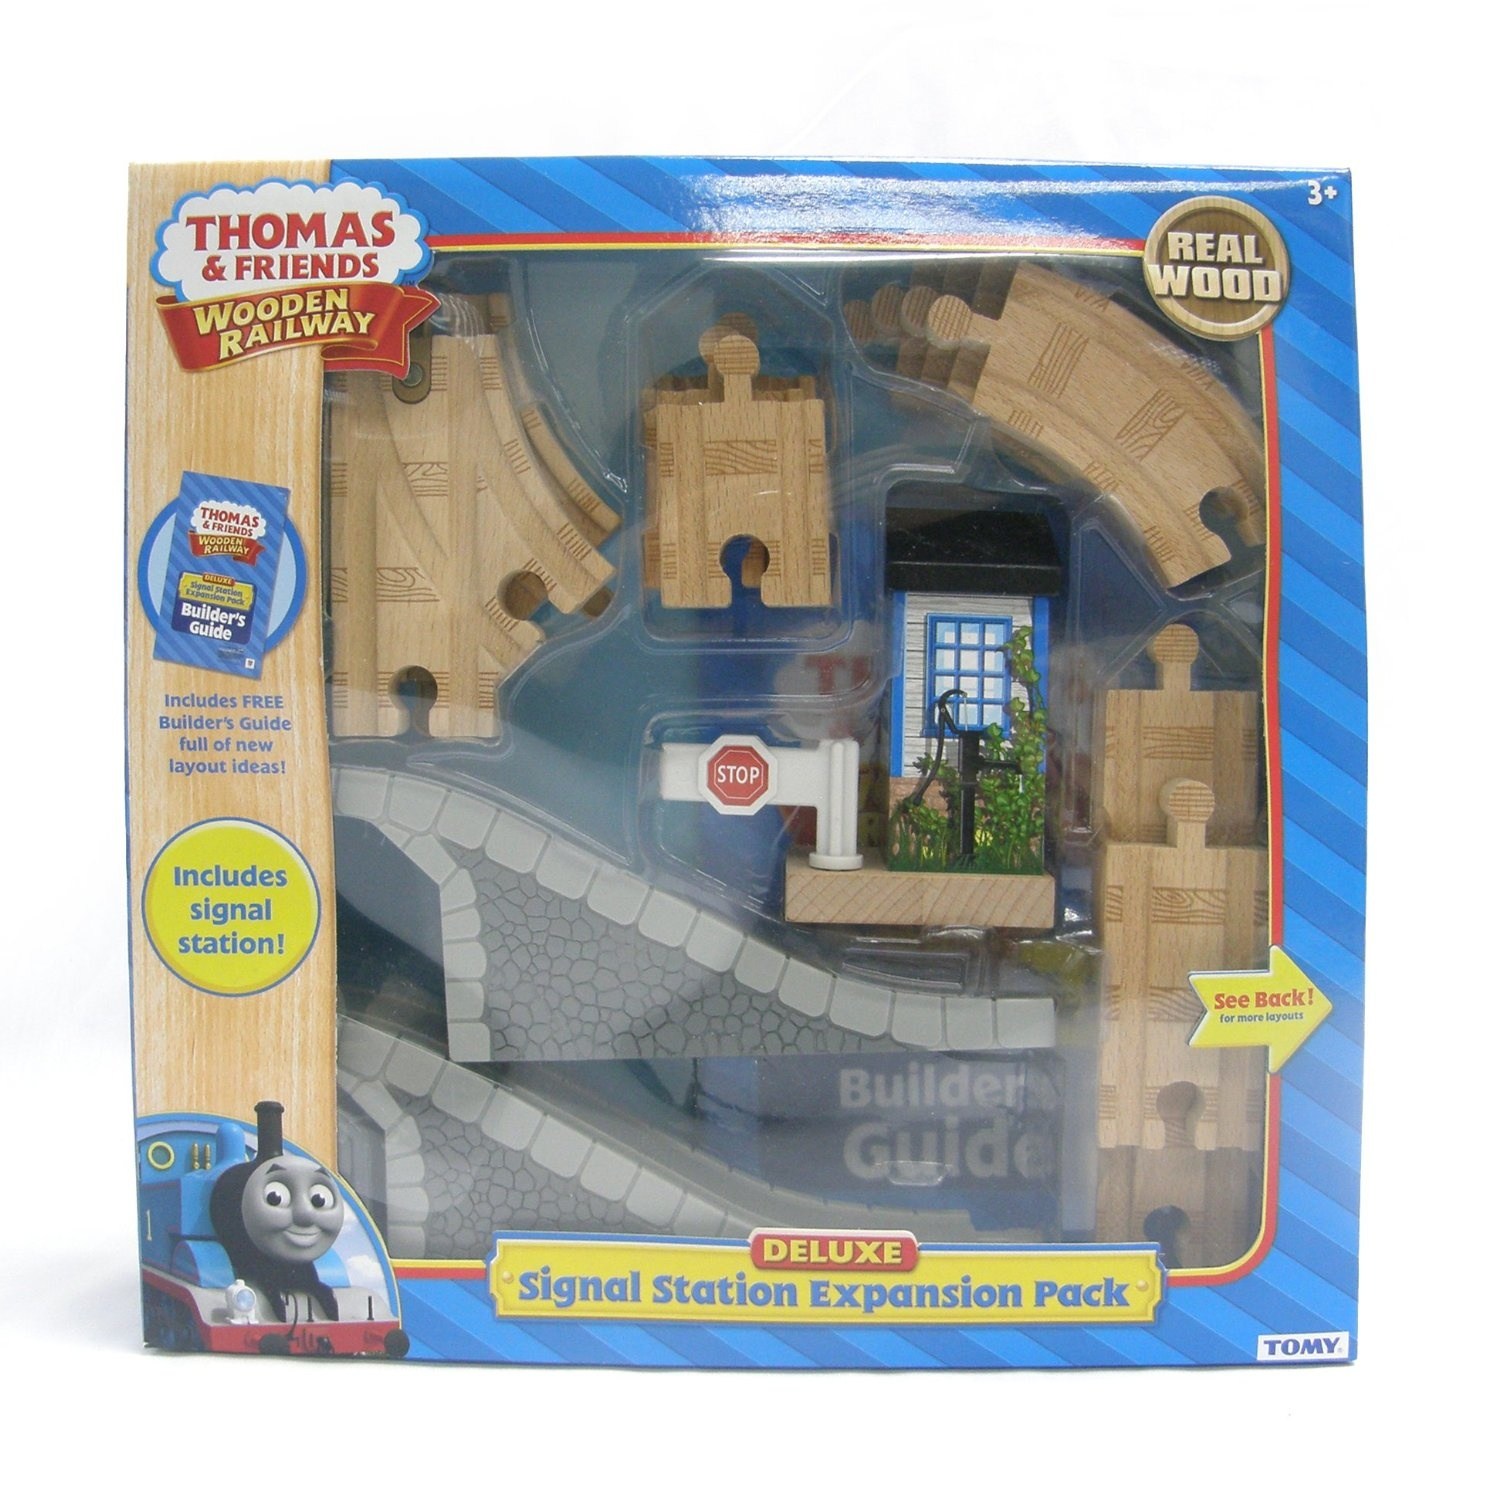 Thomas And Friends Wooden Railway Deluxe Signal Station Expansion Pack